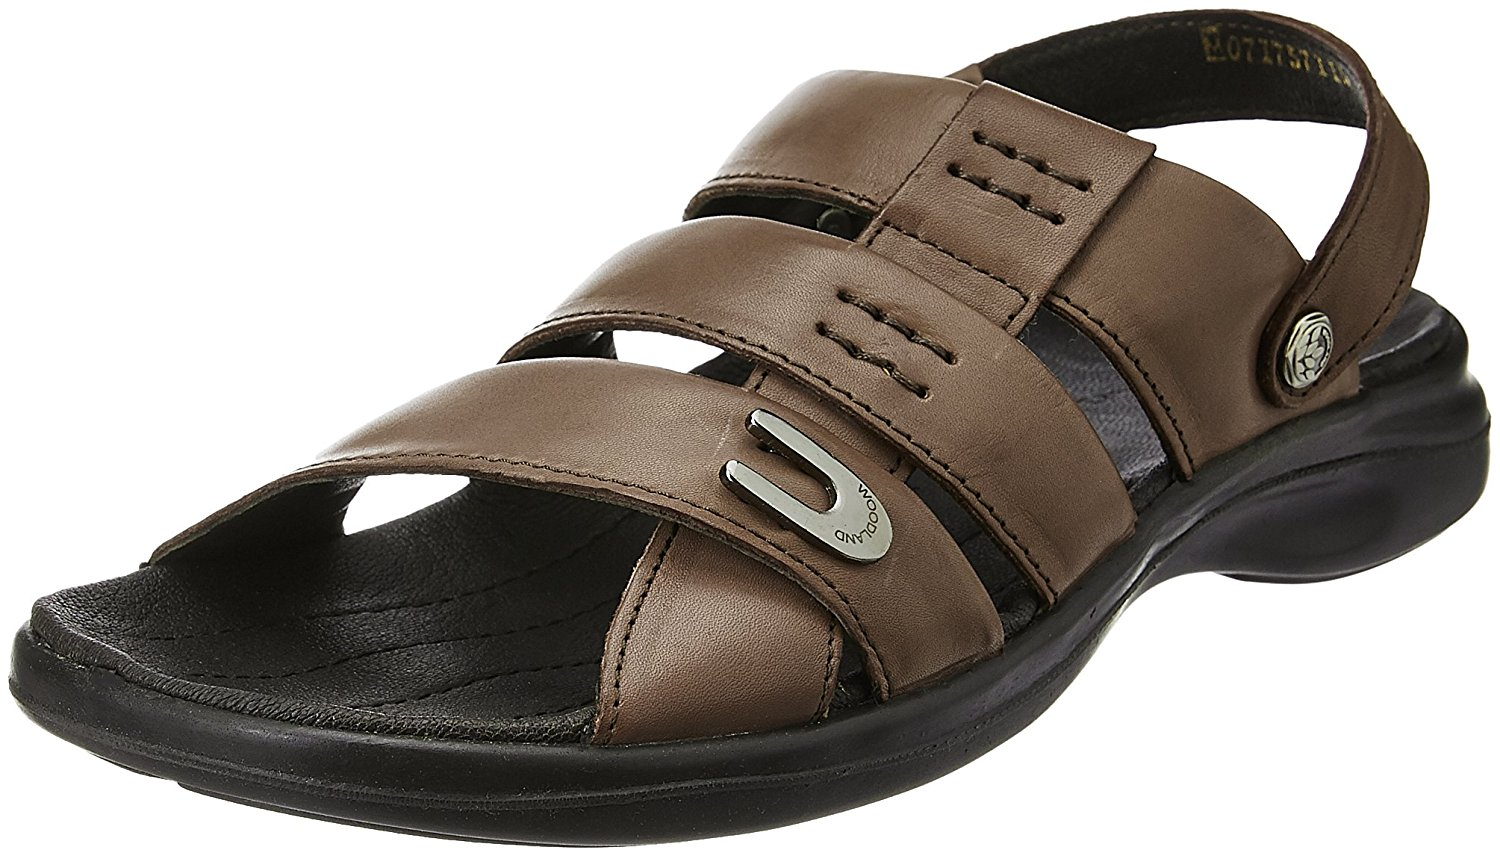 c0b8e58d29f1 Amazon-Buy-Woodland-Mens-Leather-Sandals-and-Floaters-at-Rs-1597.jpg